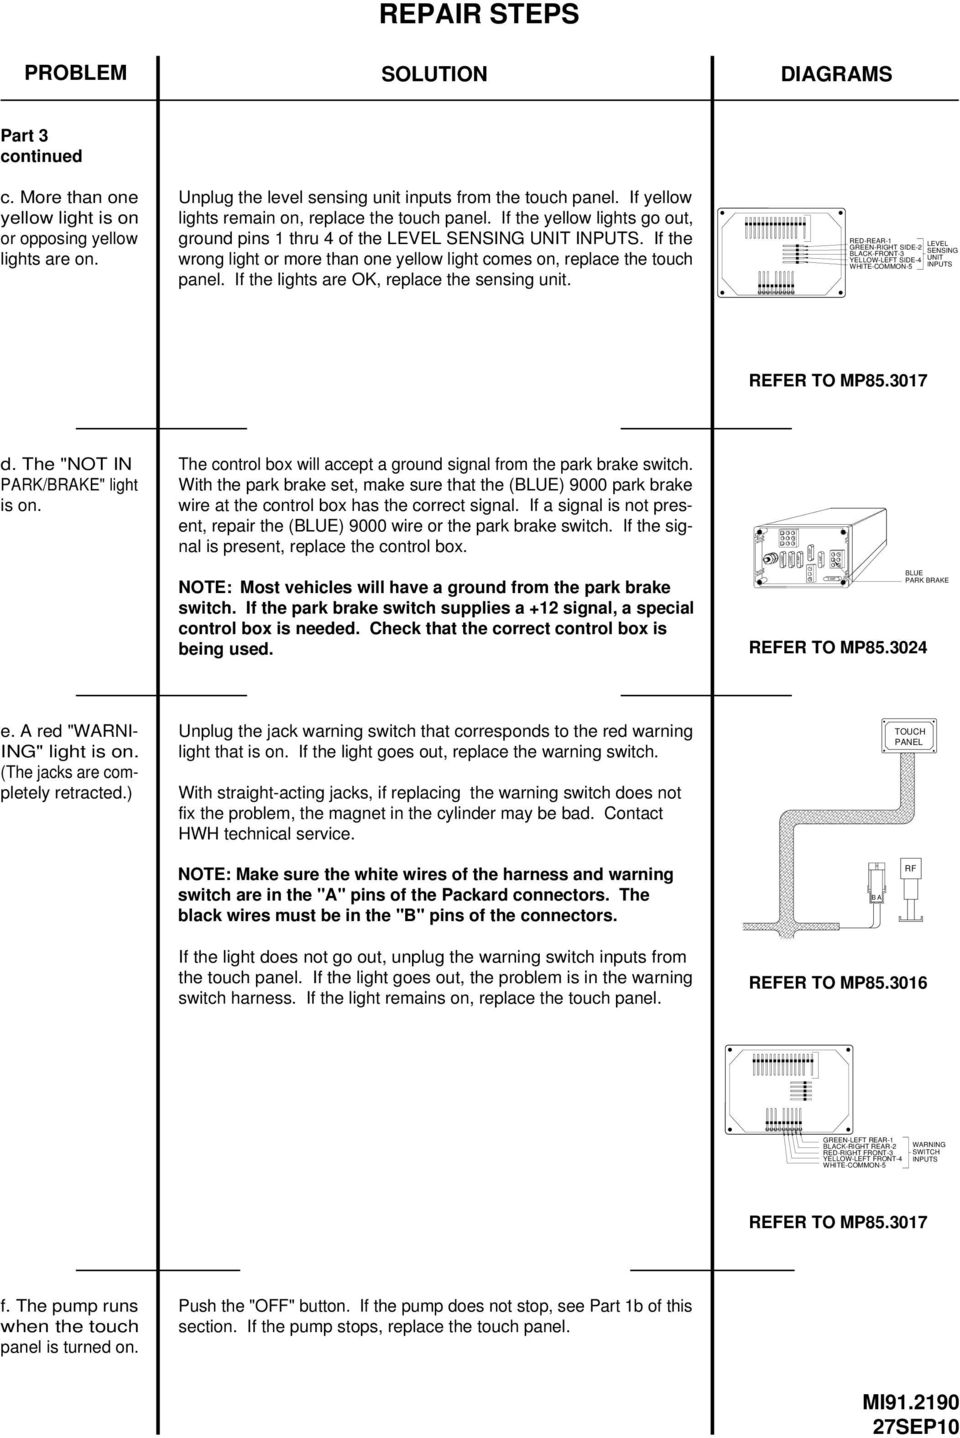 Corporation Service Manual Hwh Touch Panel Controlled 310 Series Parking Brake Indicator Light Wiring Diagram If The Wrong Or More Than One Yellow Comes On Replace